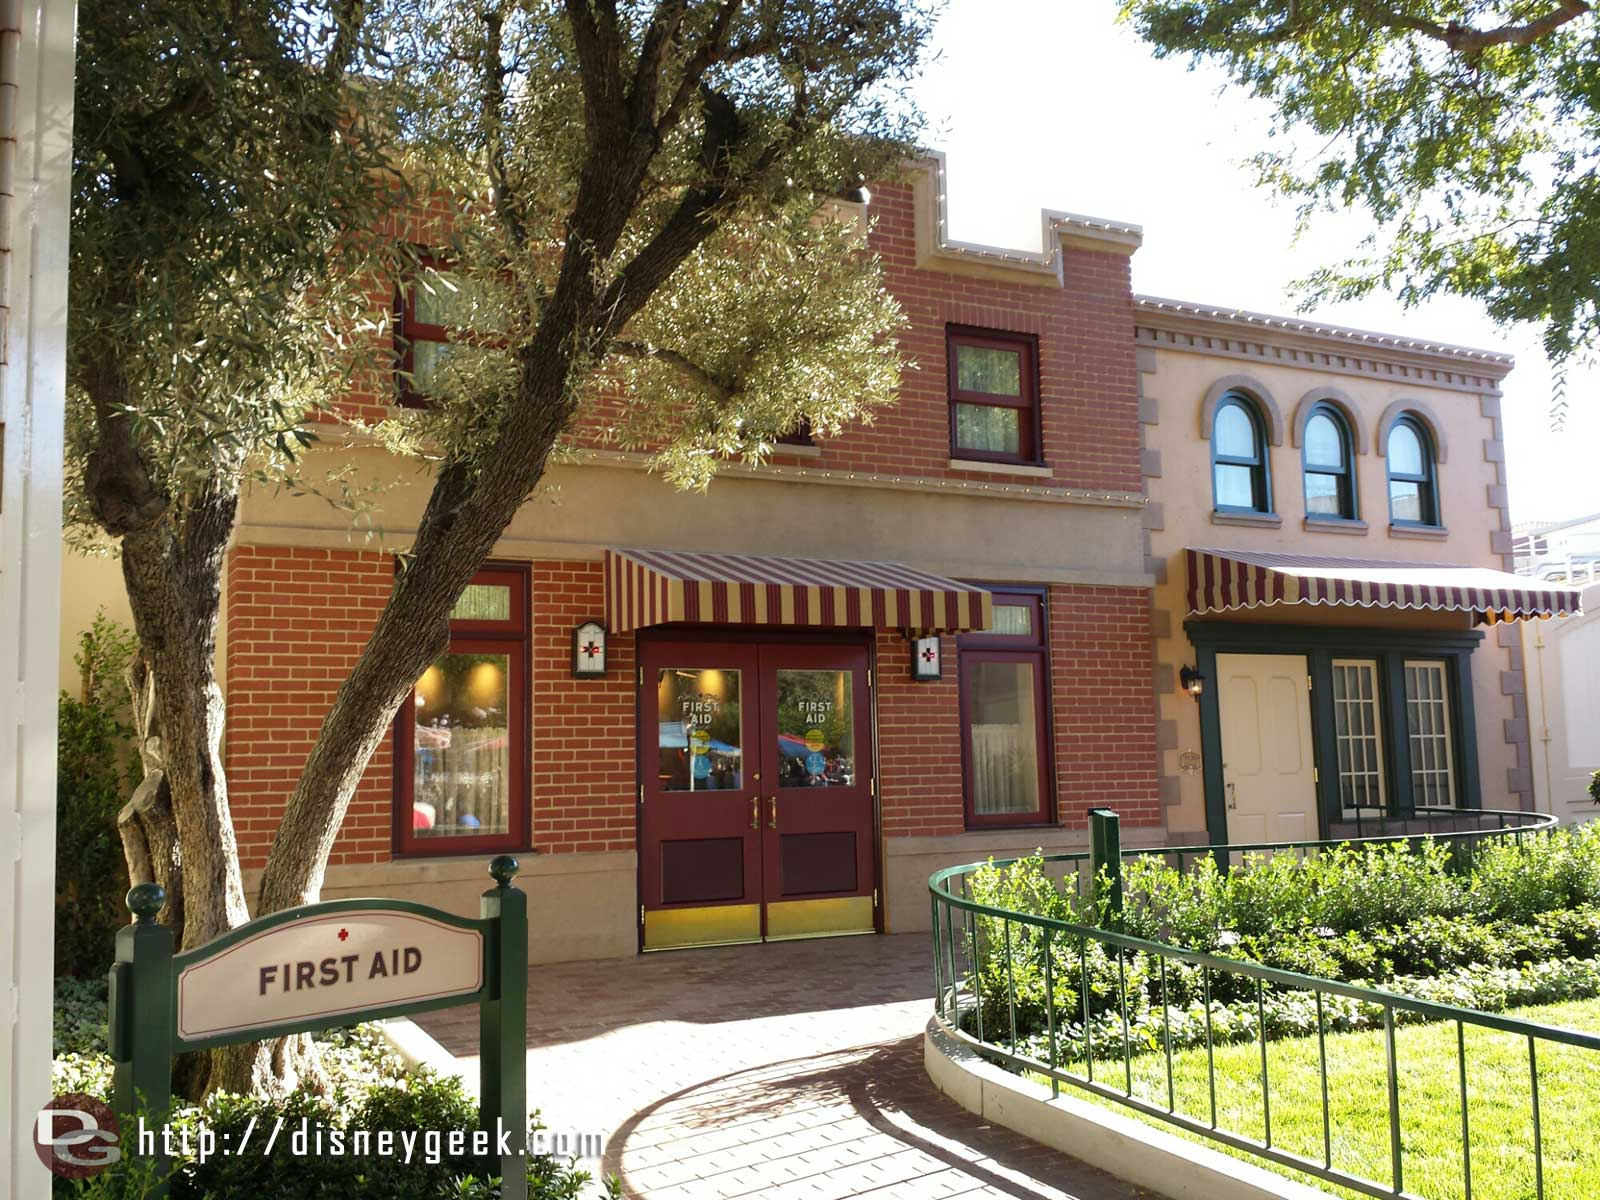 The first aid & wish lounge facades at #Disneyland